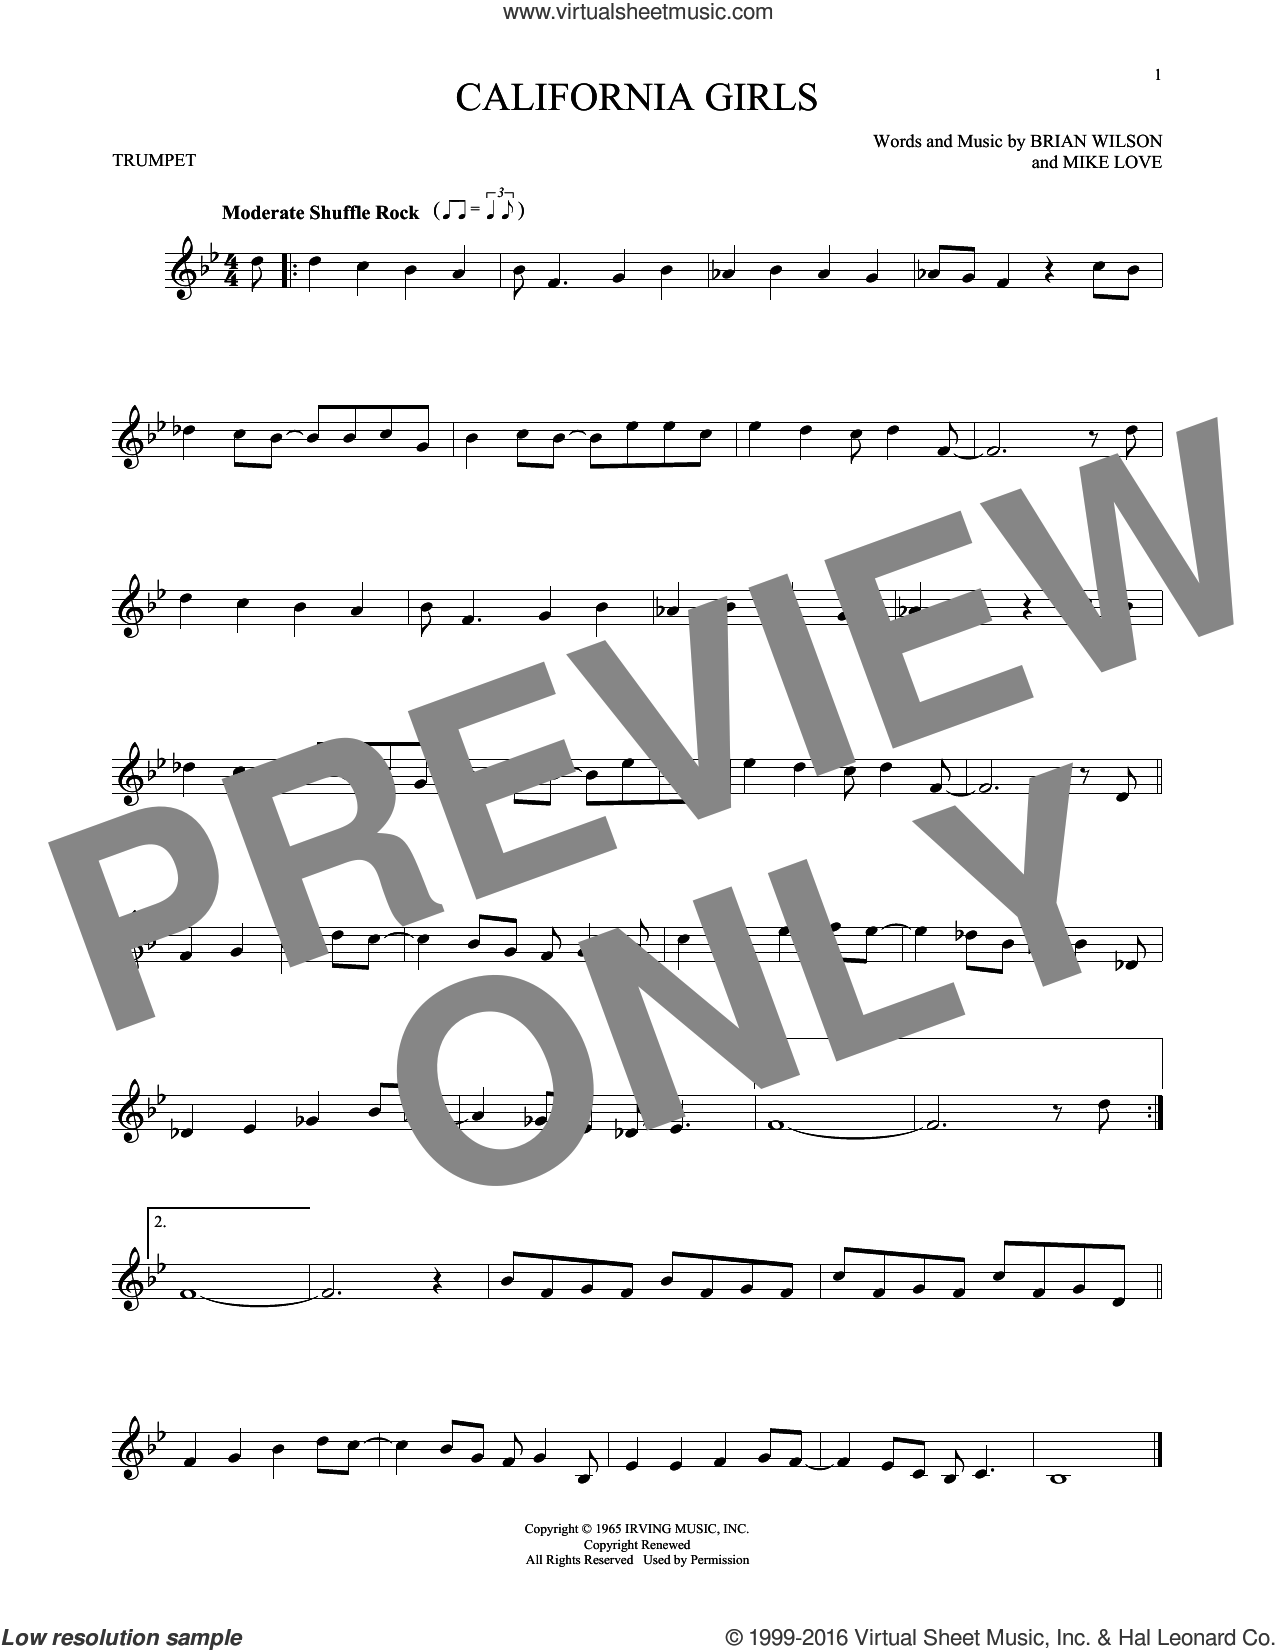 California Girls sheet music for trumpet solo by The Beach Boys, David Lee Roth, Brian Wilson and Mike Love, intermediate skill level